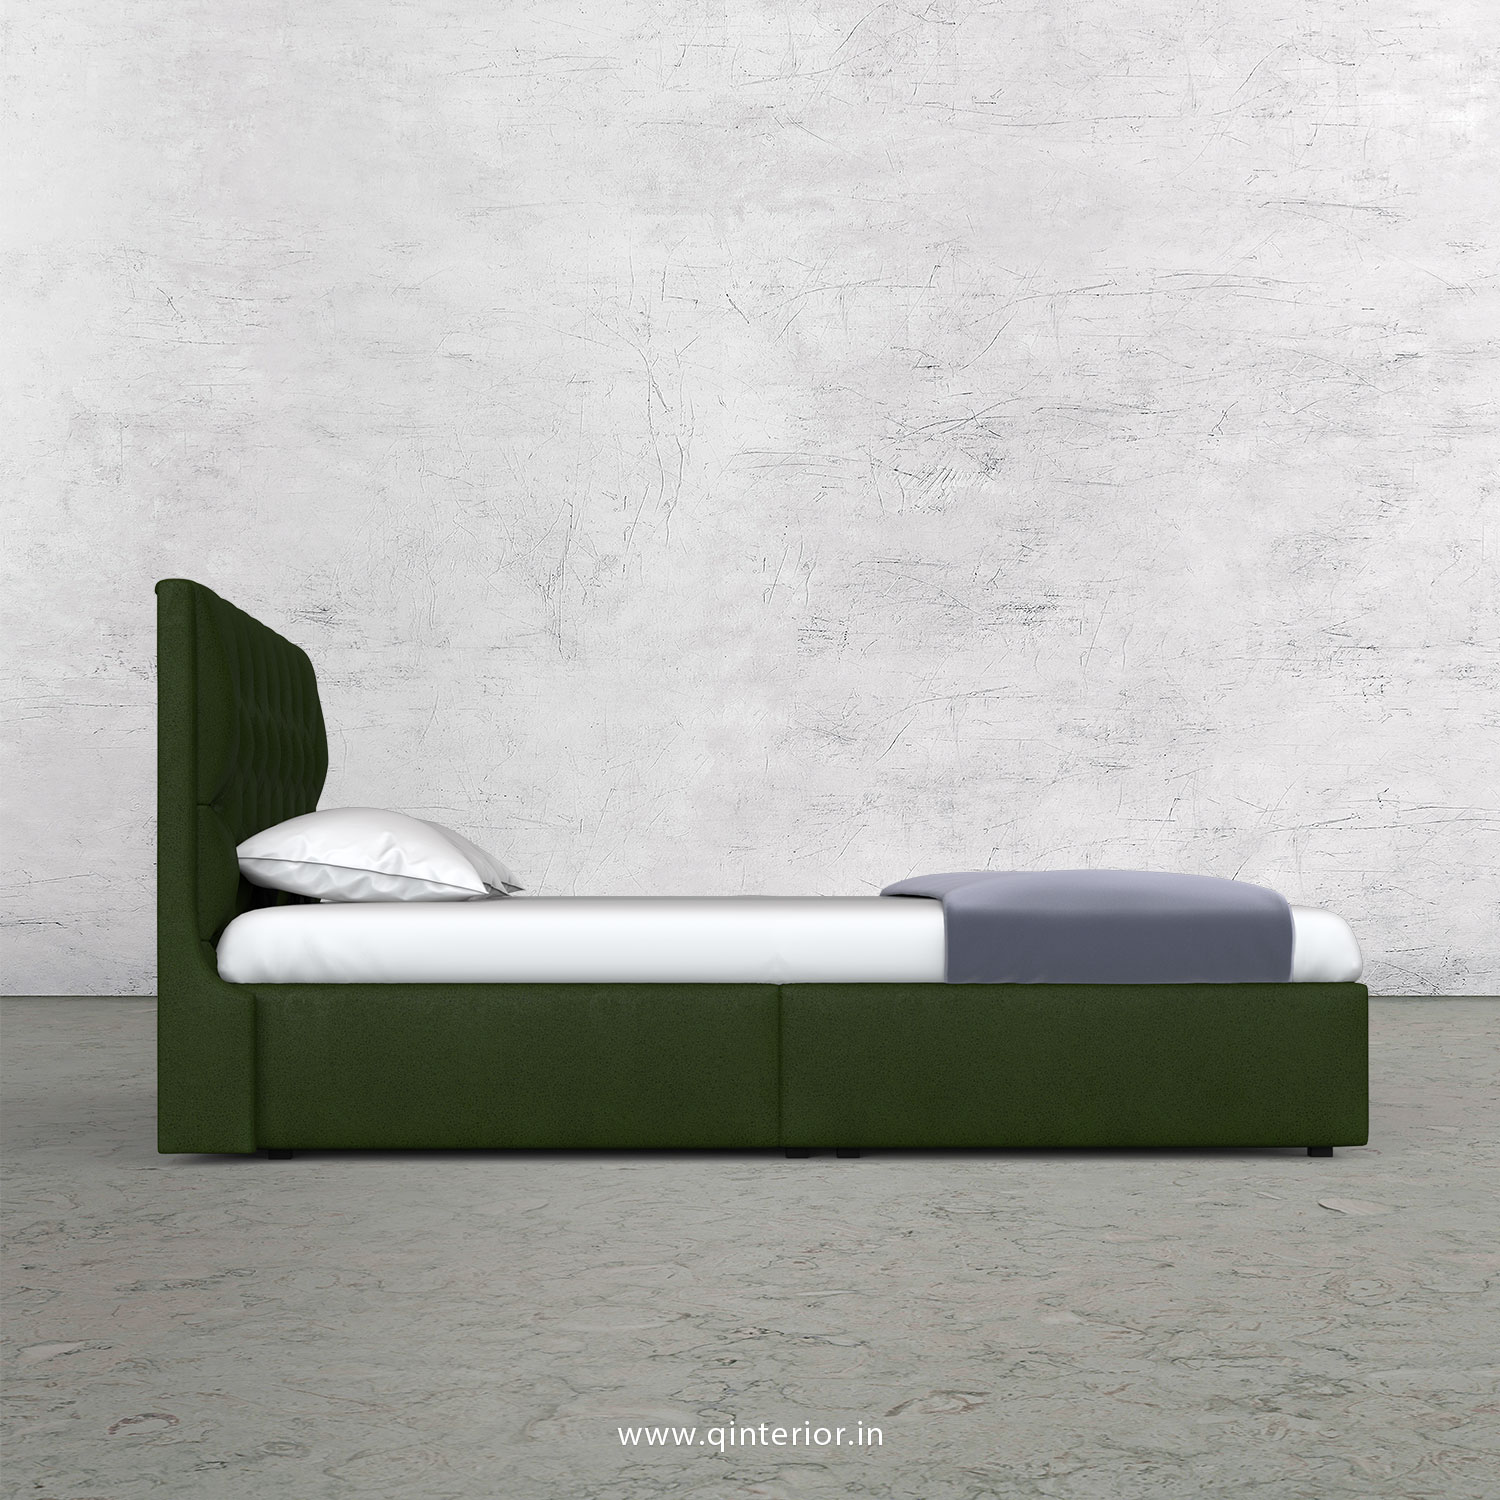 Scorpius Queen Bed in Fab Leather Fabric - QBD009 FL04